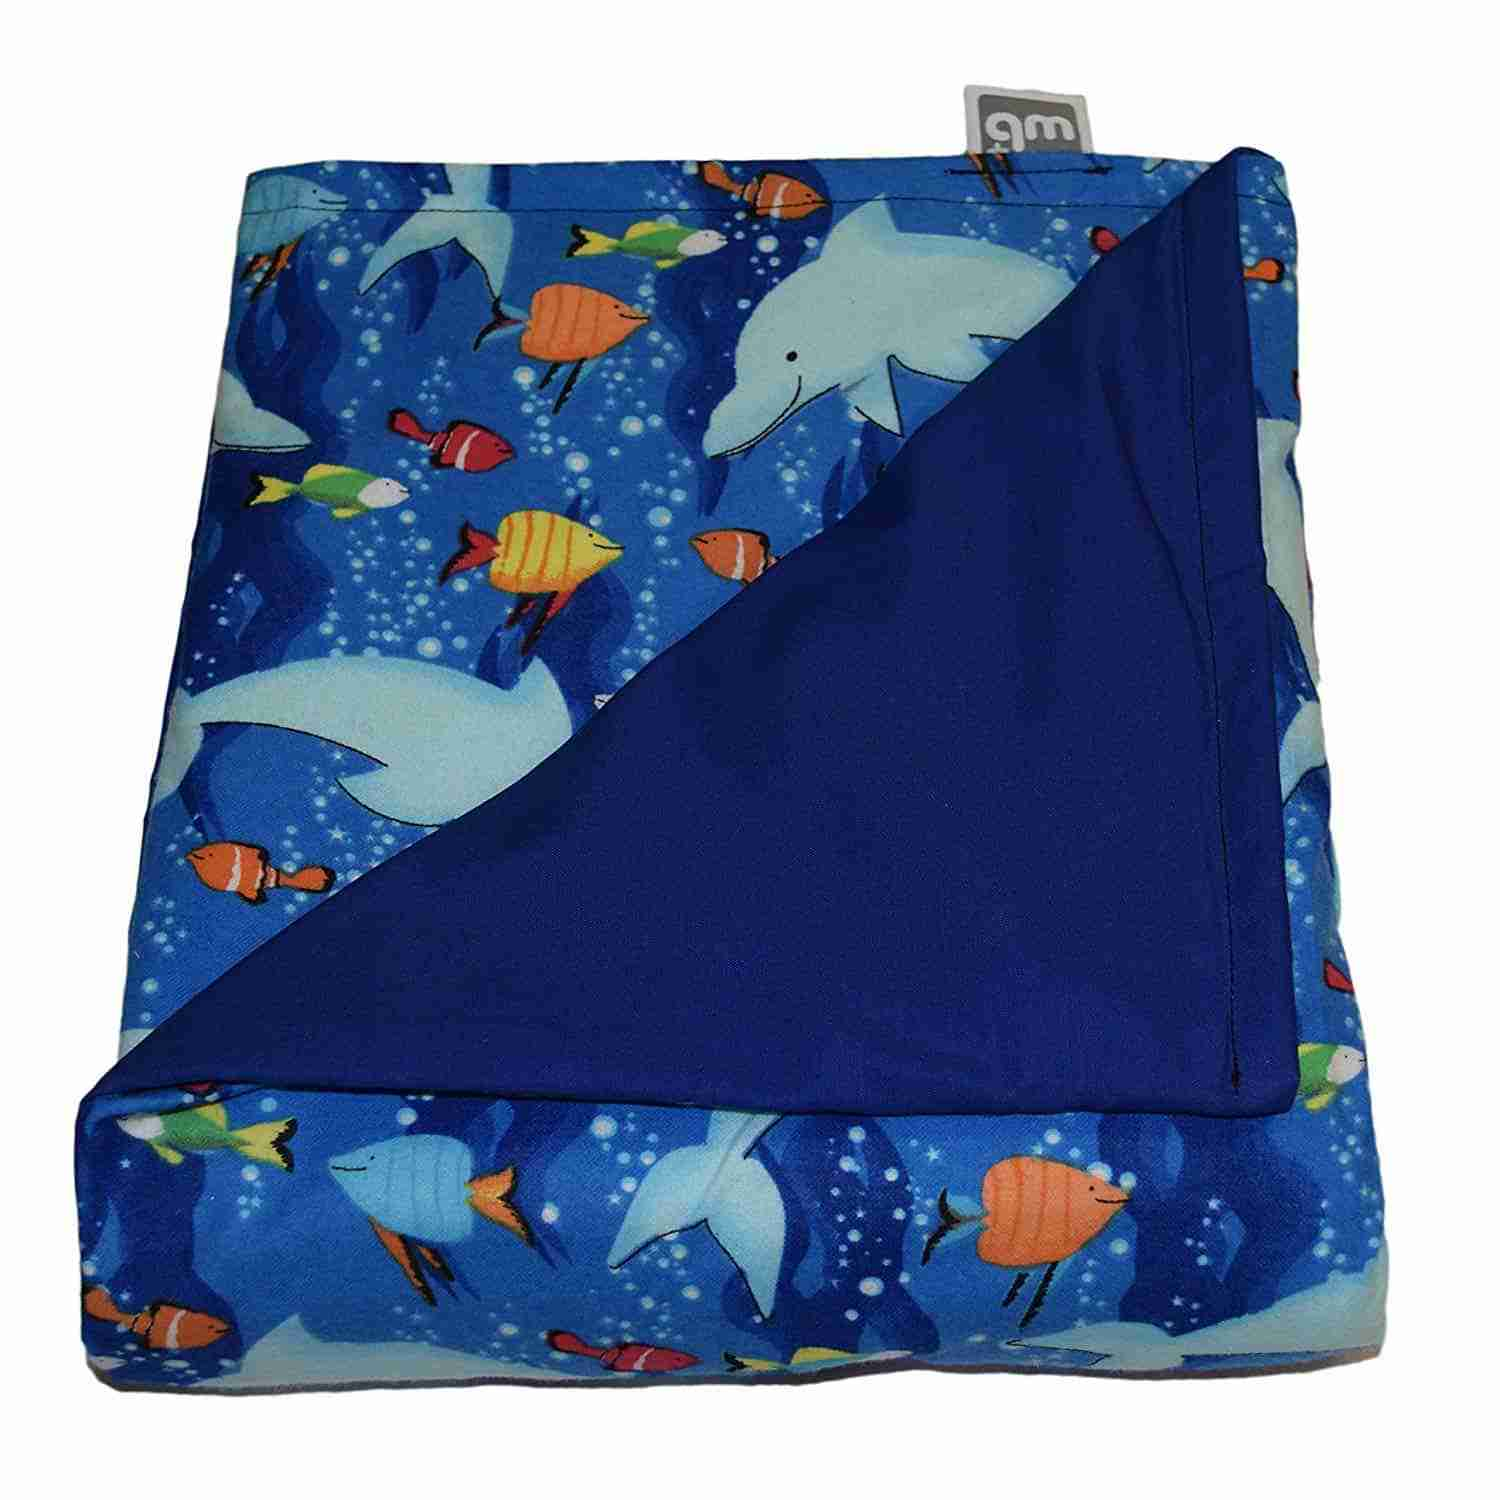 best weighted blanket reviews for kids 2019